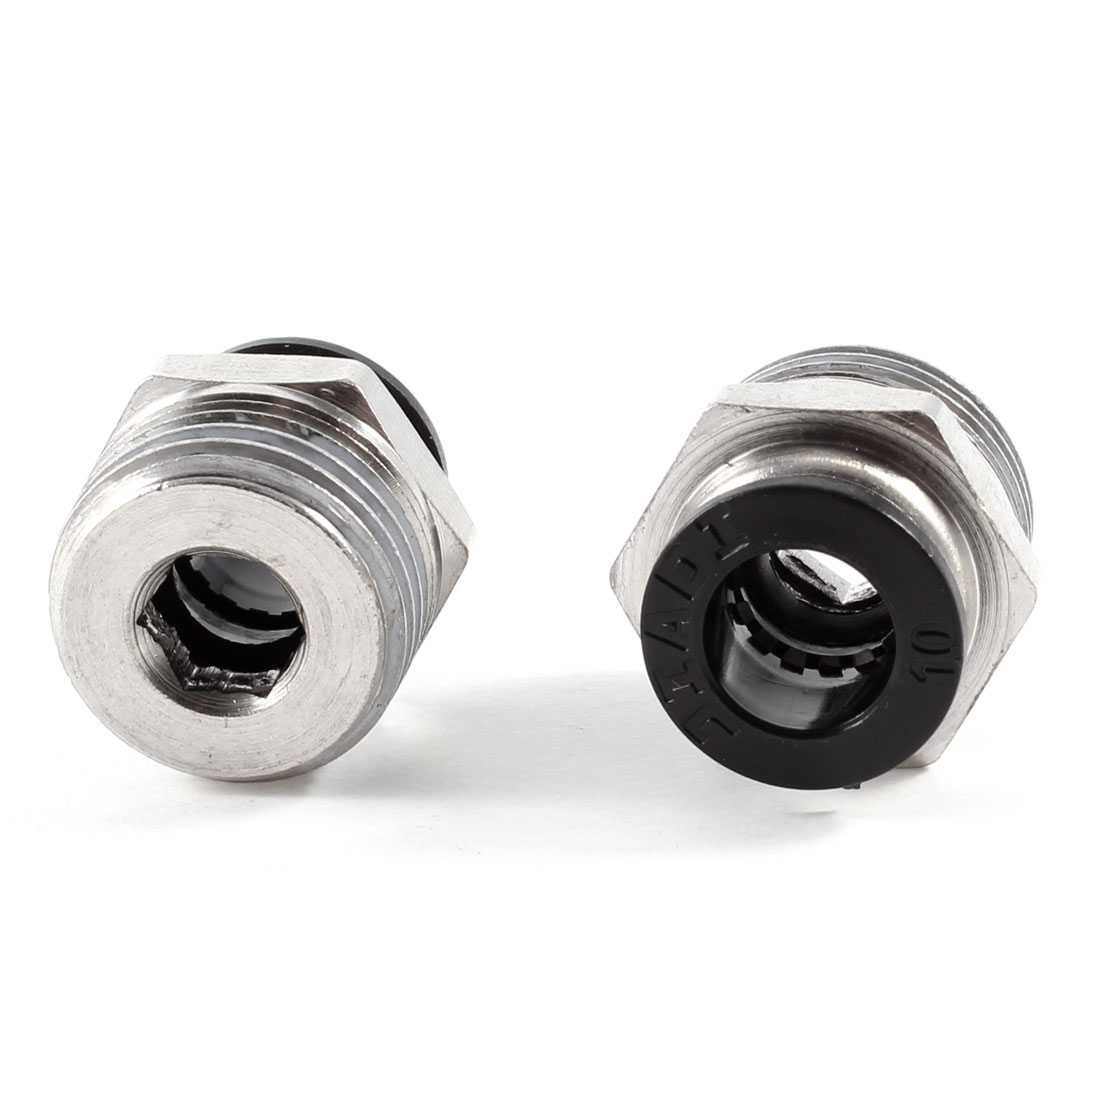 "2 Pcs 1/2"" PT OD Tubing 10mm Push In Joint Pneumatic Connector Quick Fitting"